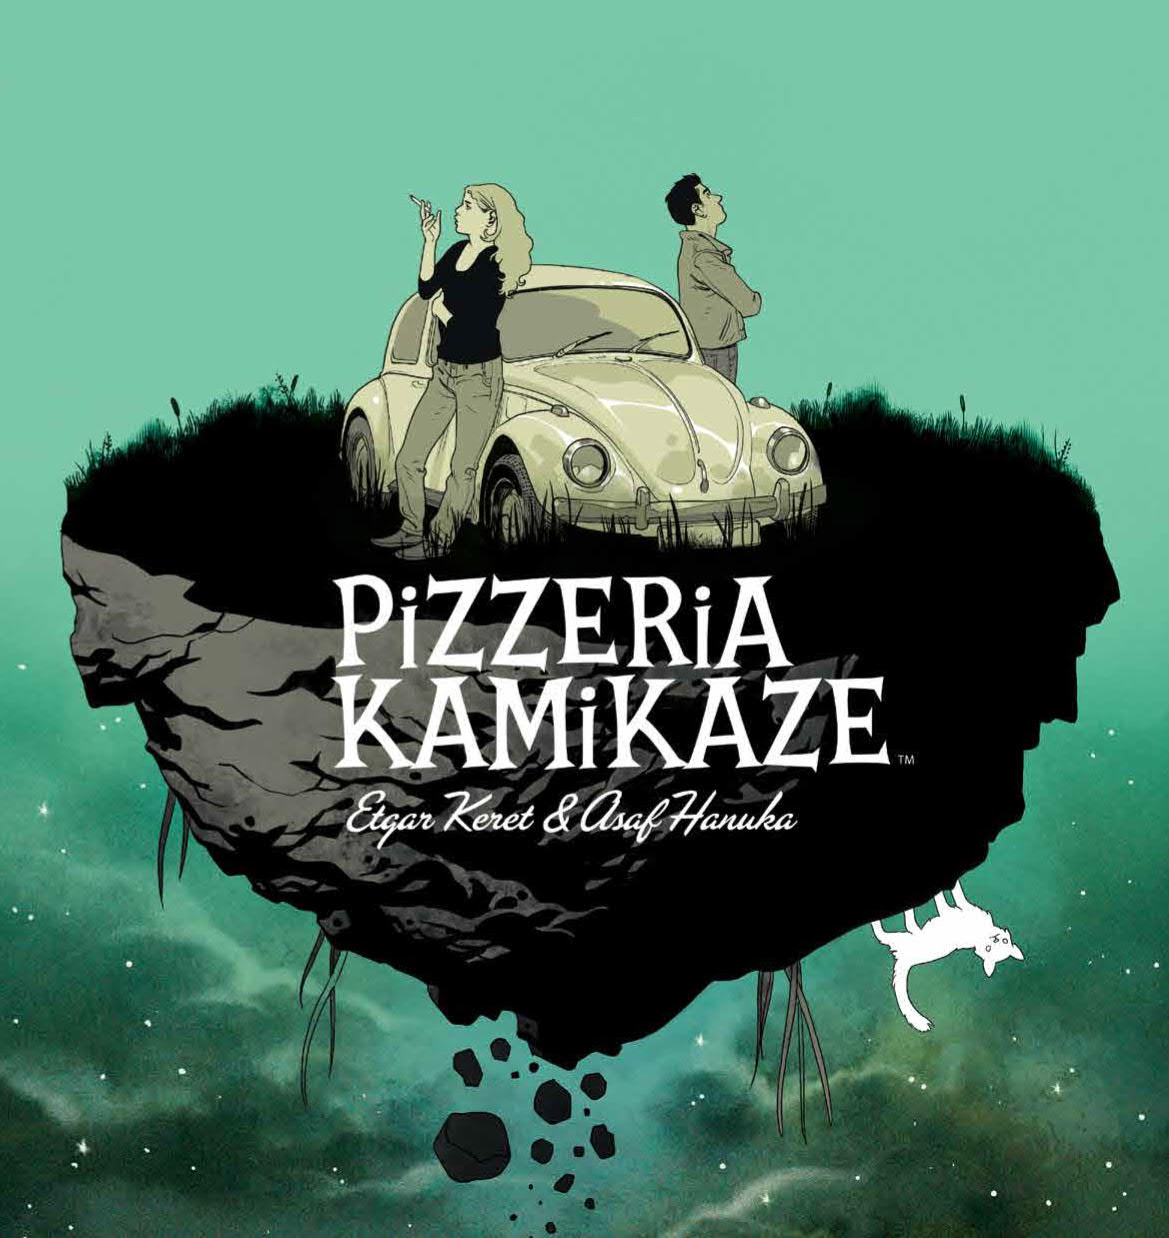 'Pizzeria Kamikaze' takes a darkly humorous, yet deeply respectful look at suicide